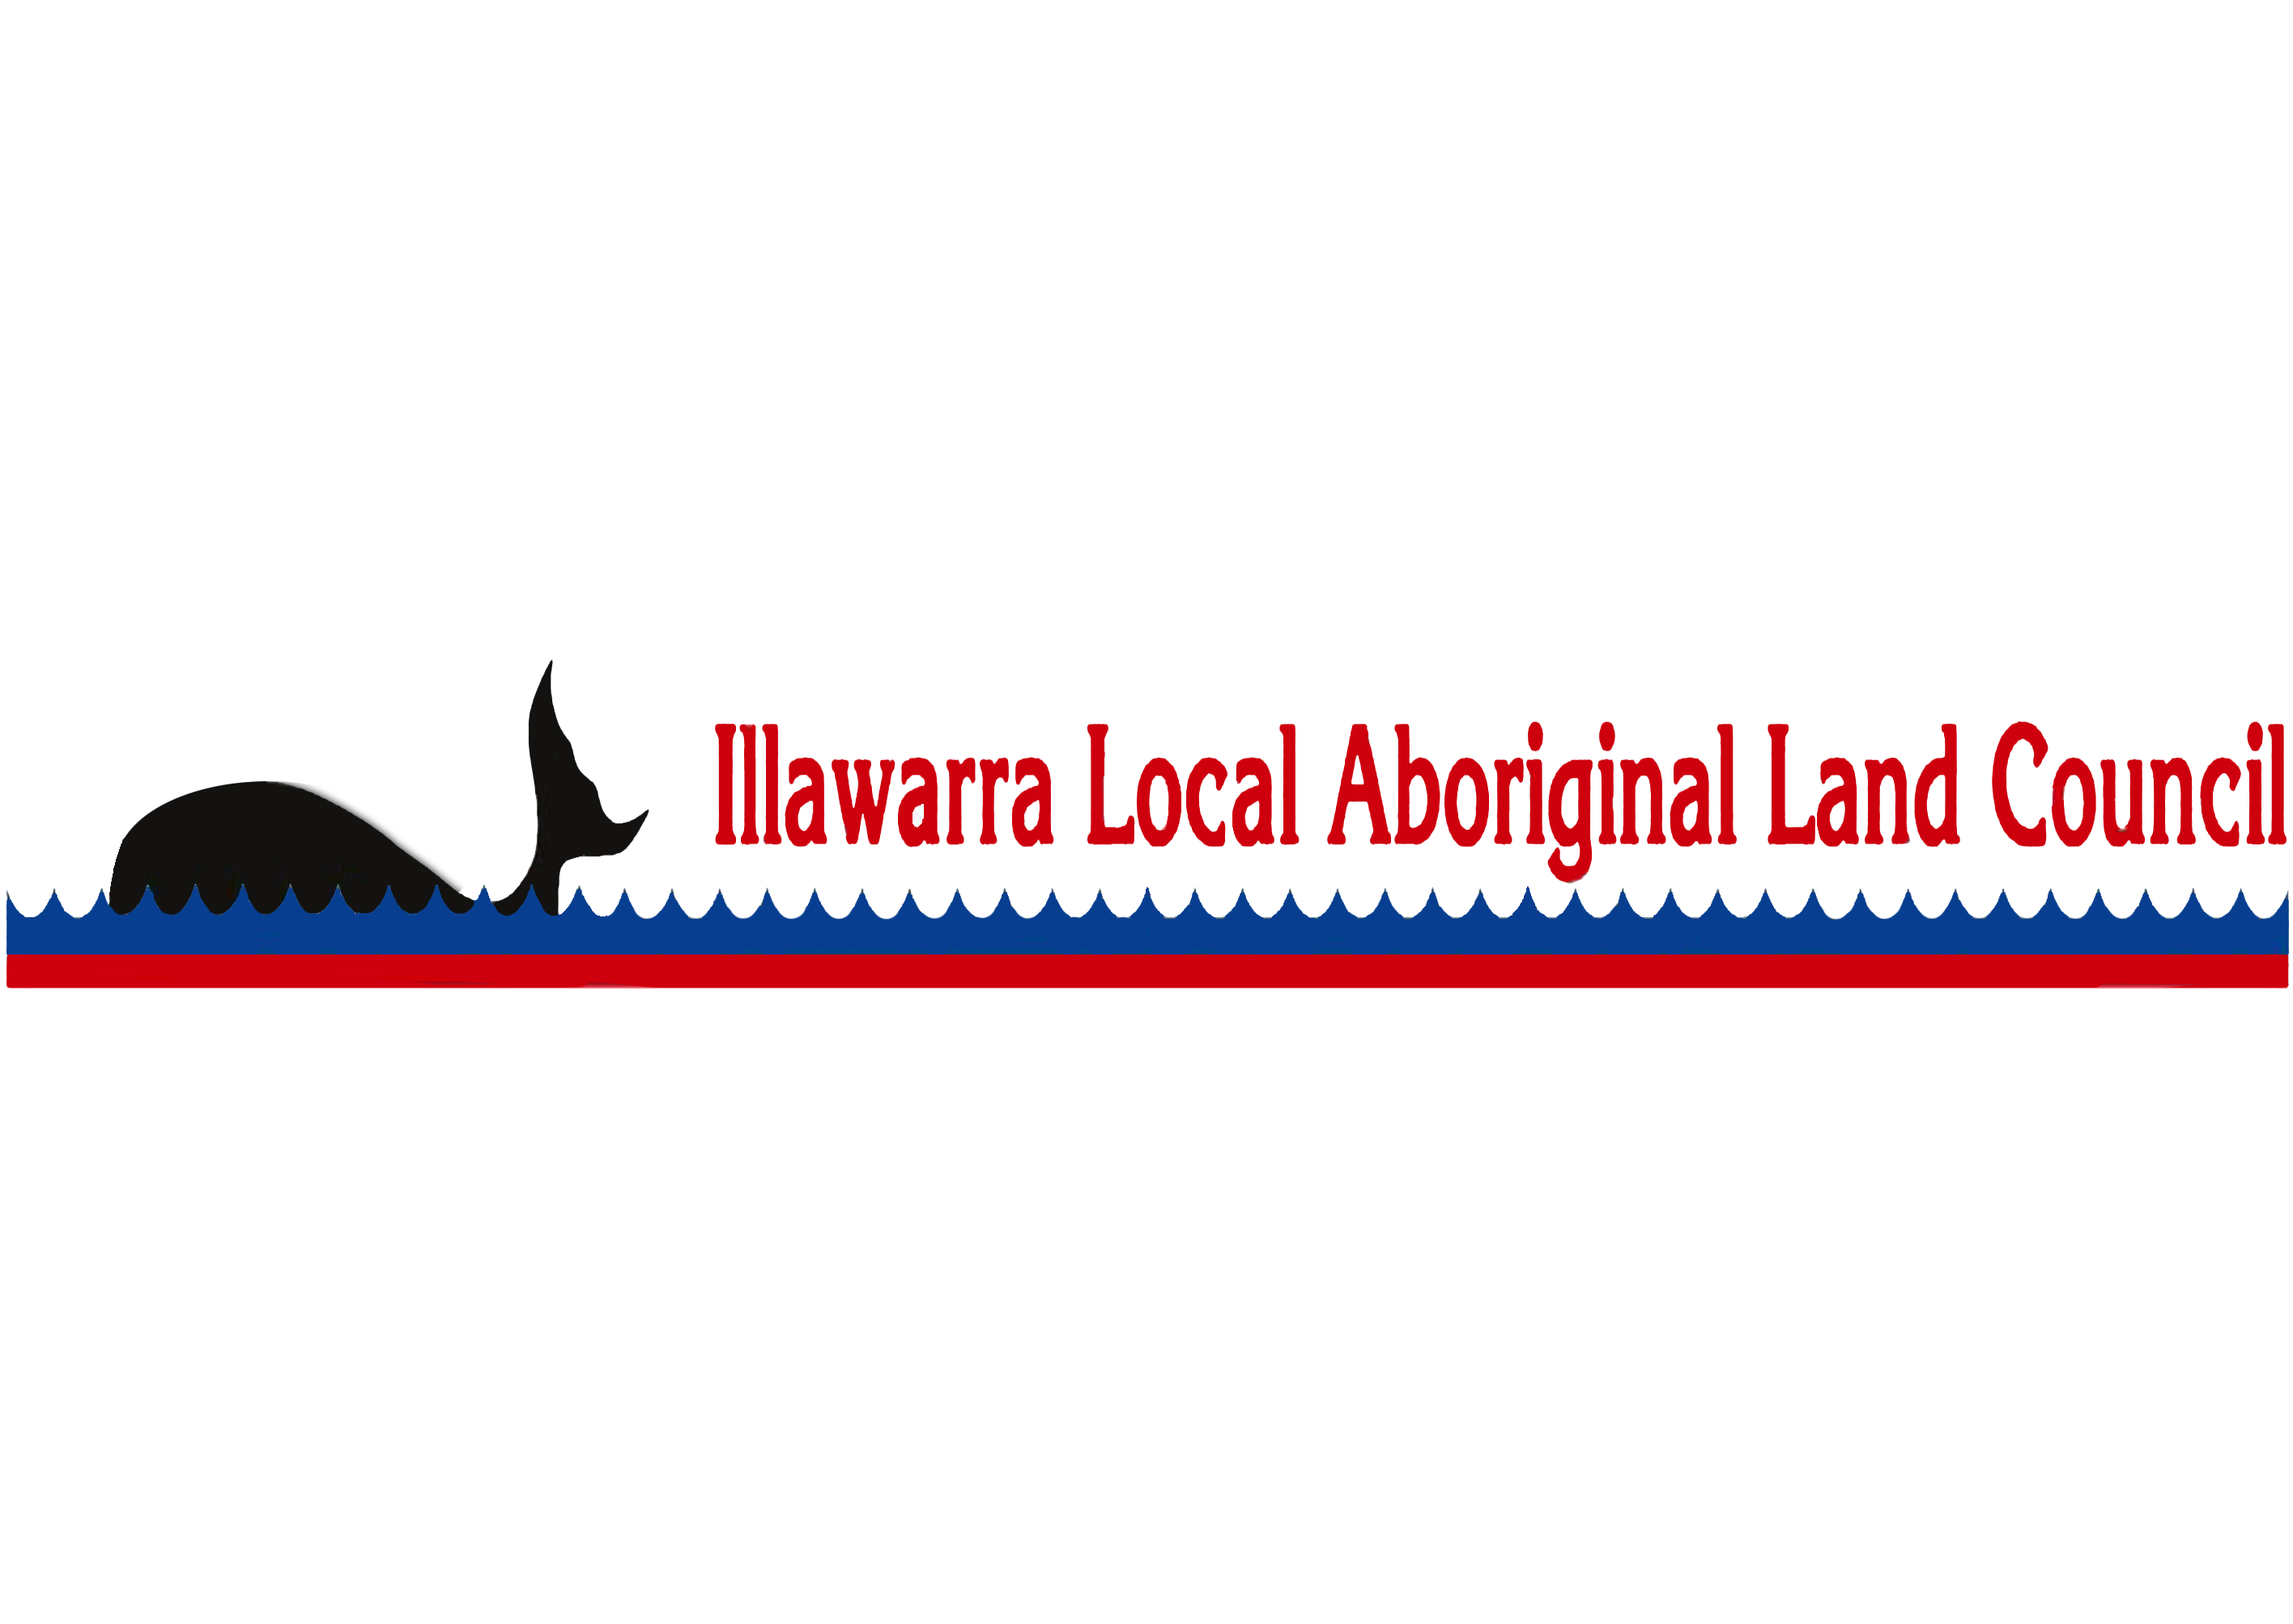 Illawarra Local Aboriginal Land